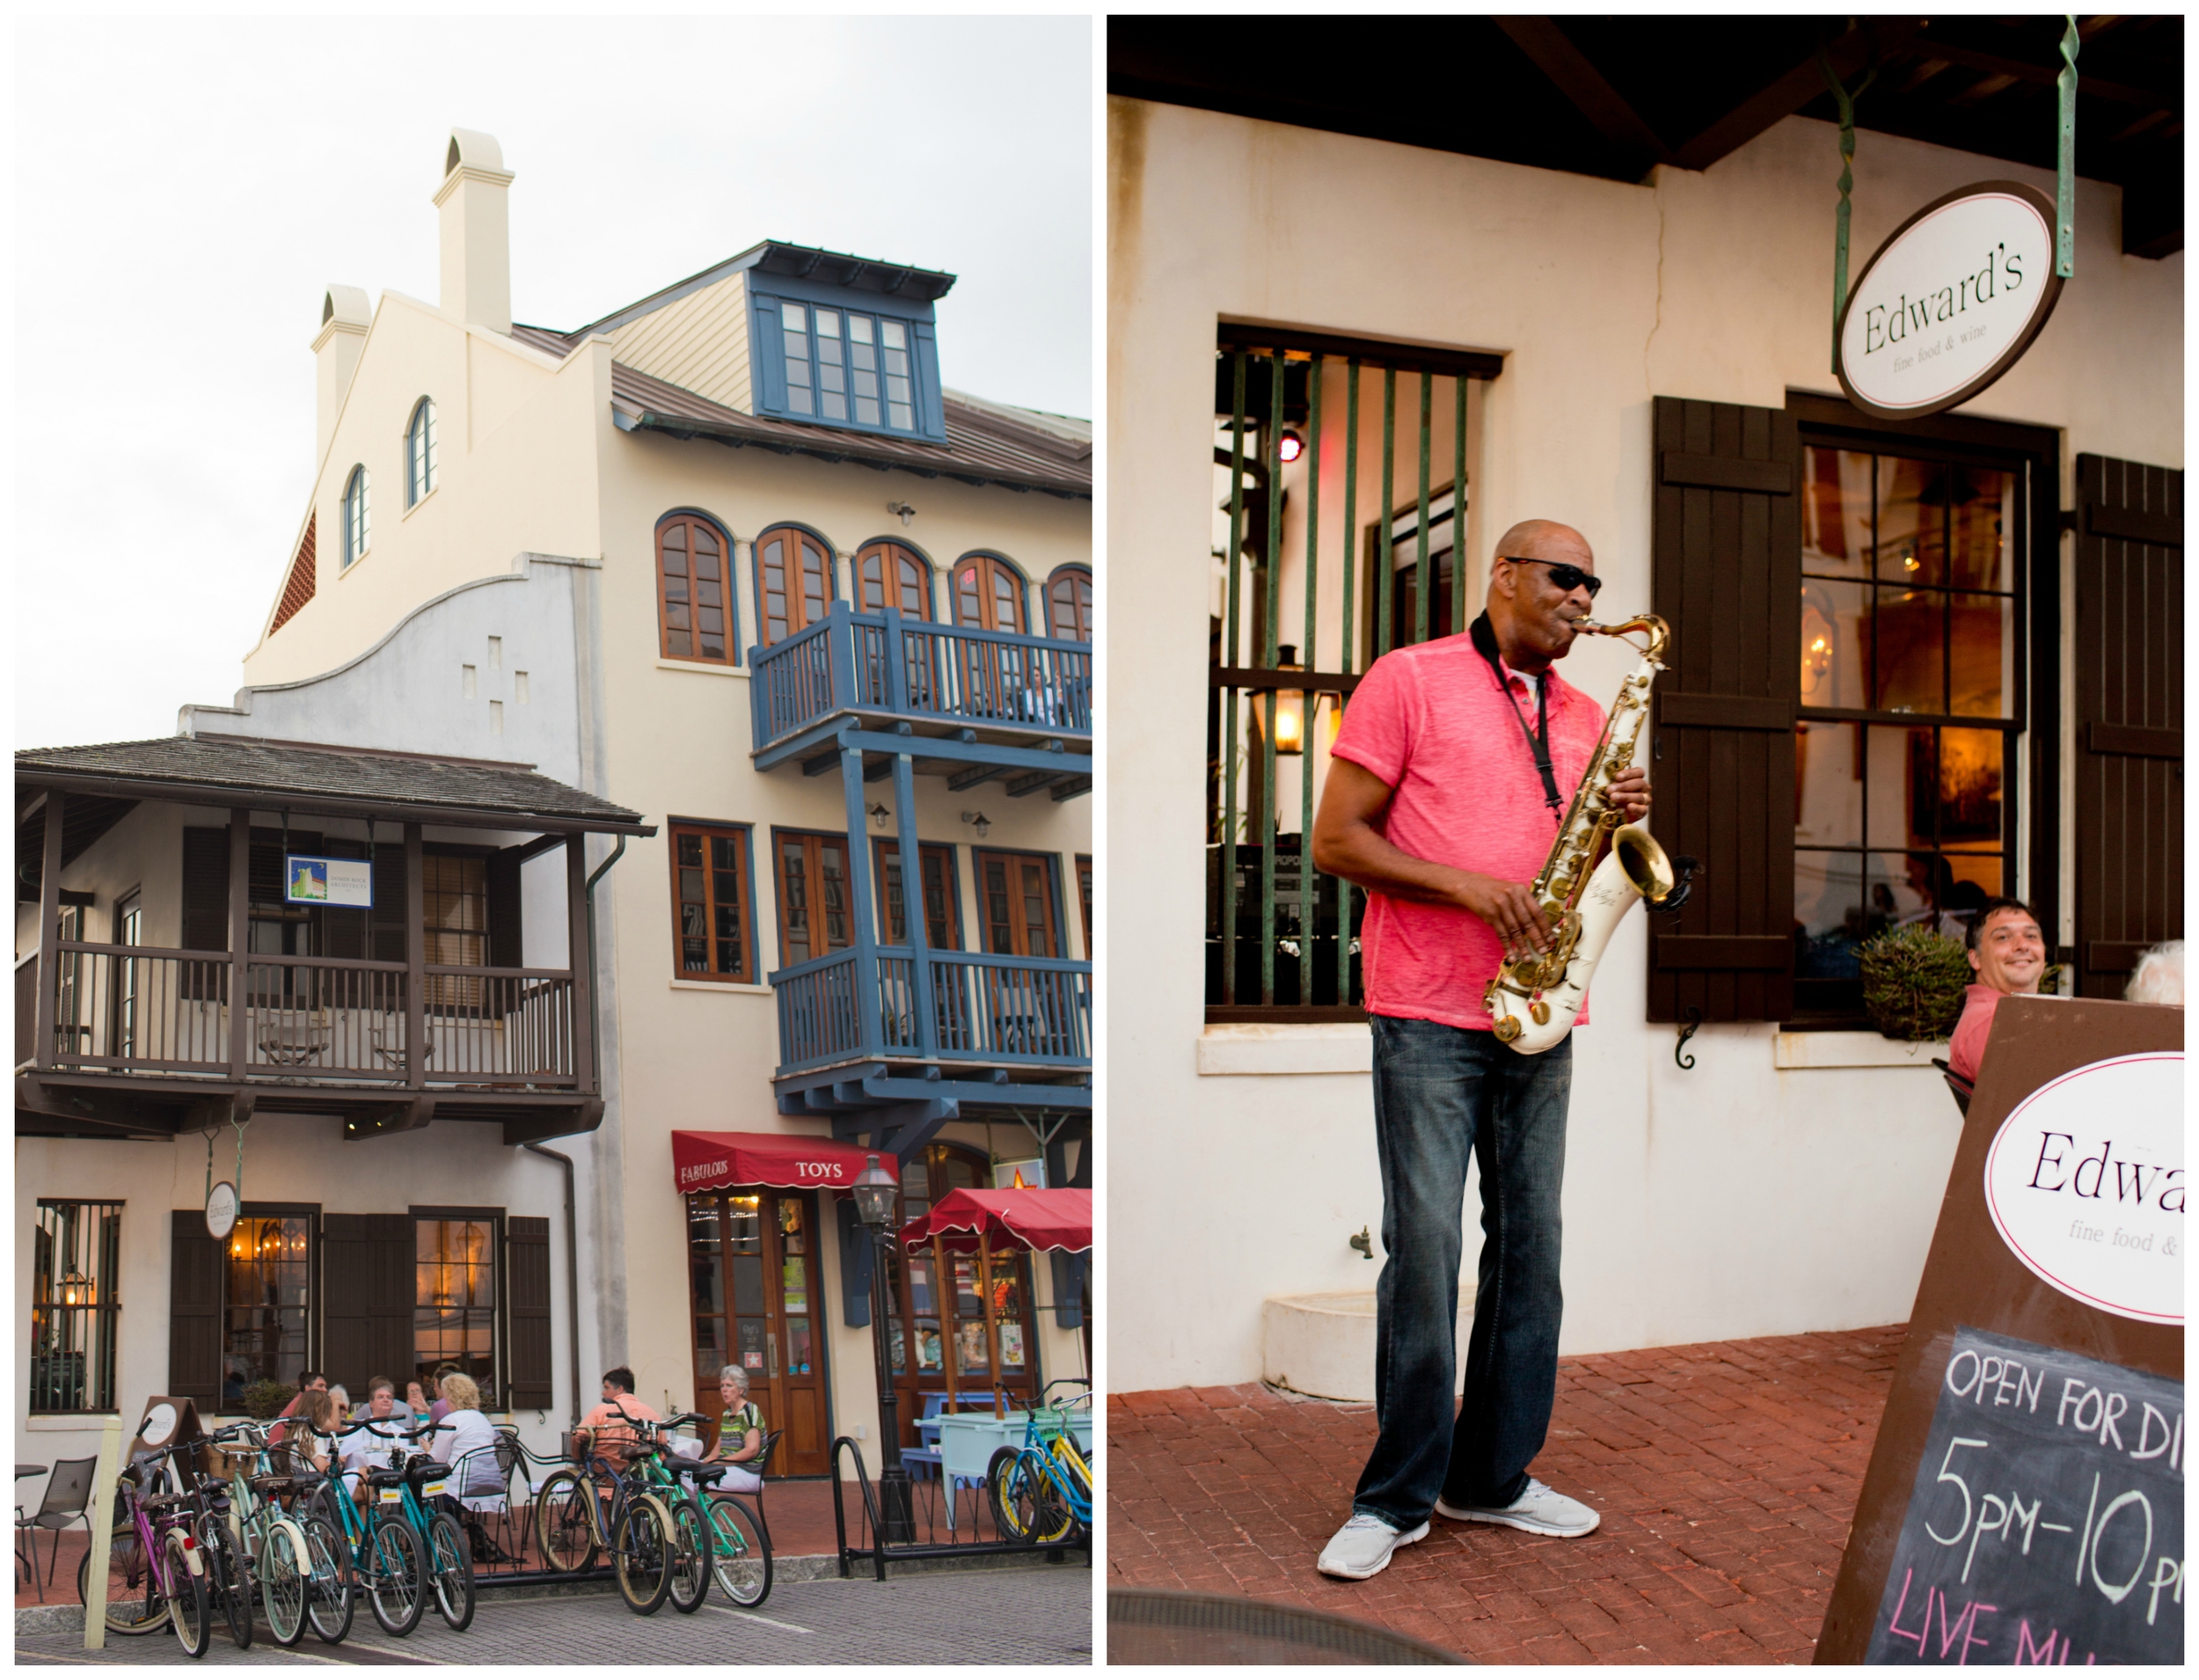 Edward's Restaurant in Rosemary Beach, Florida (saxophone player)